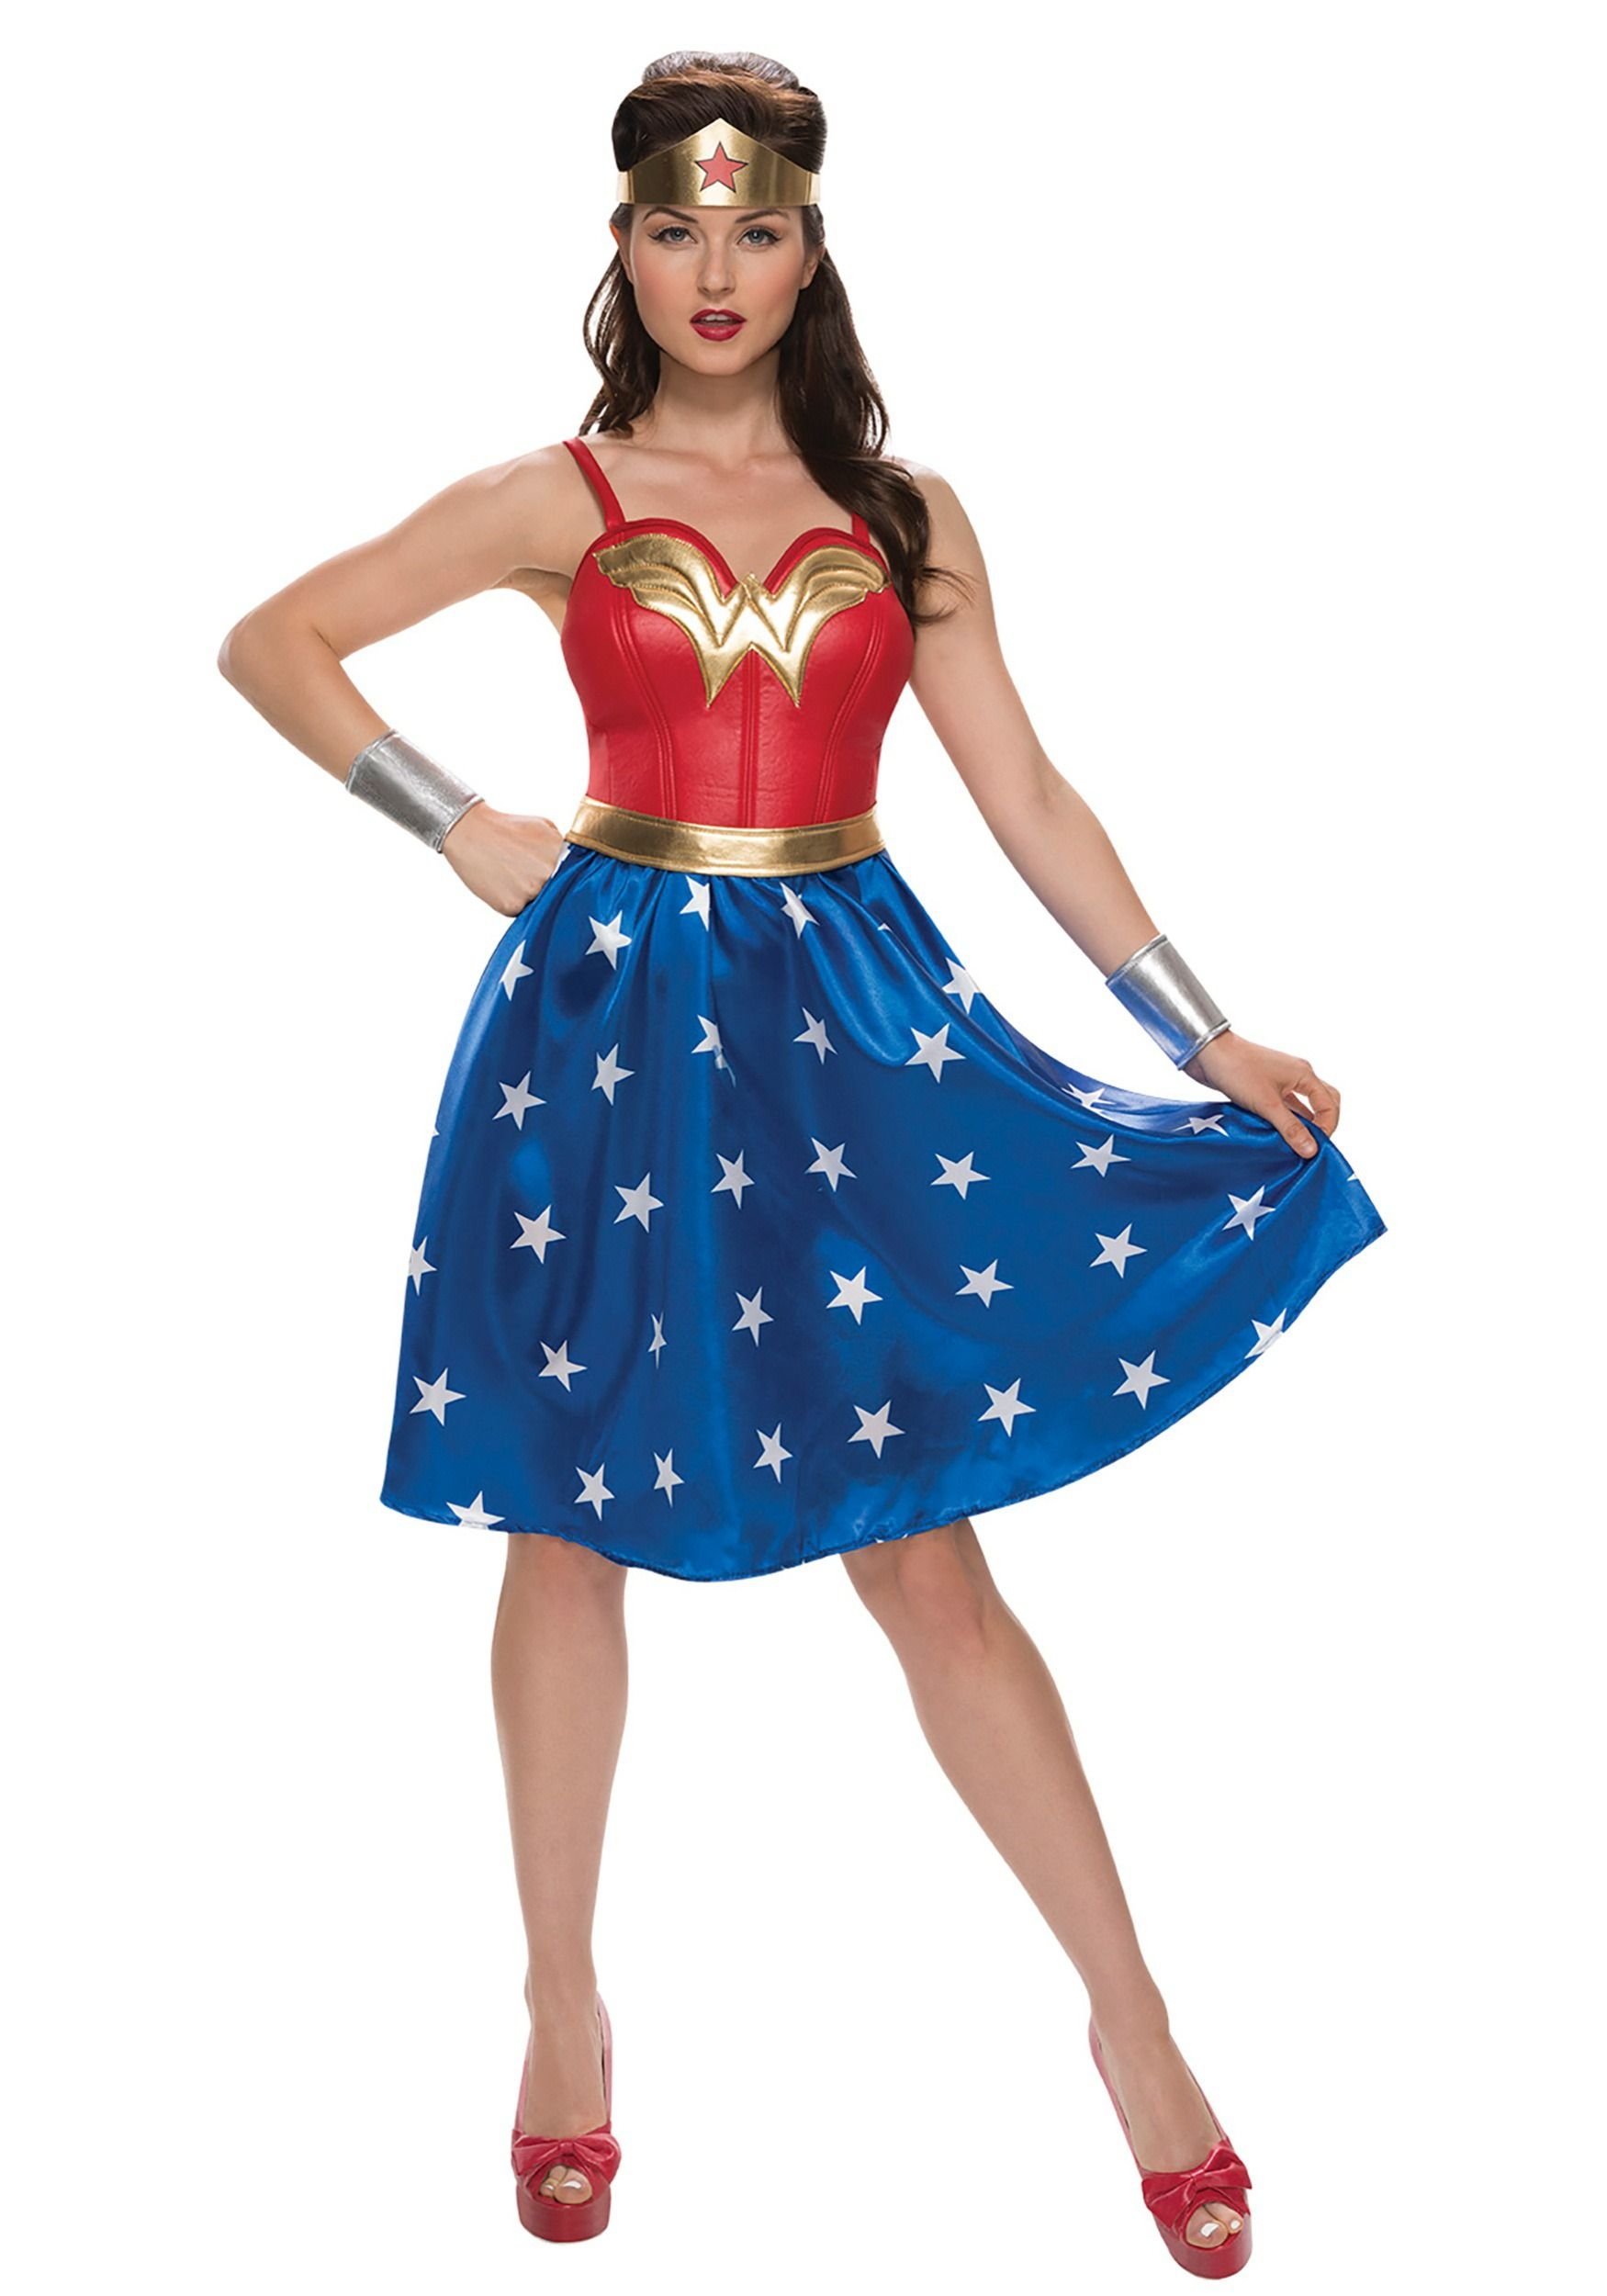 11 awesome and jovial women's halloween costumes - | costume